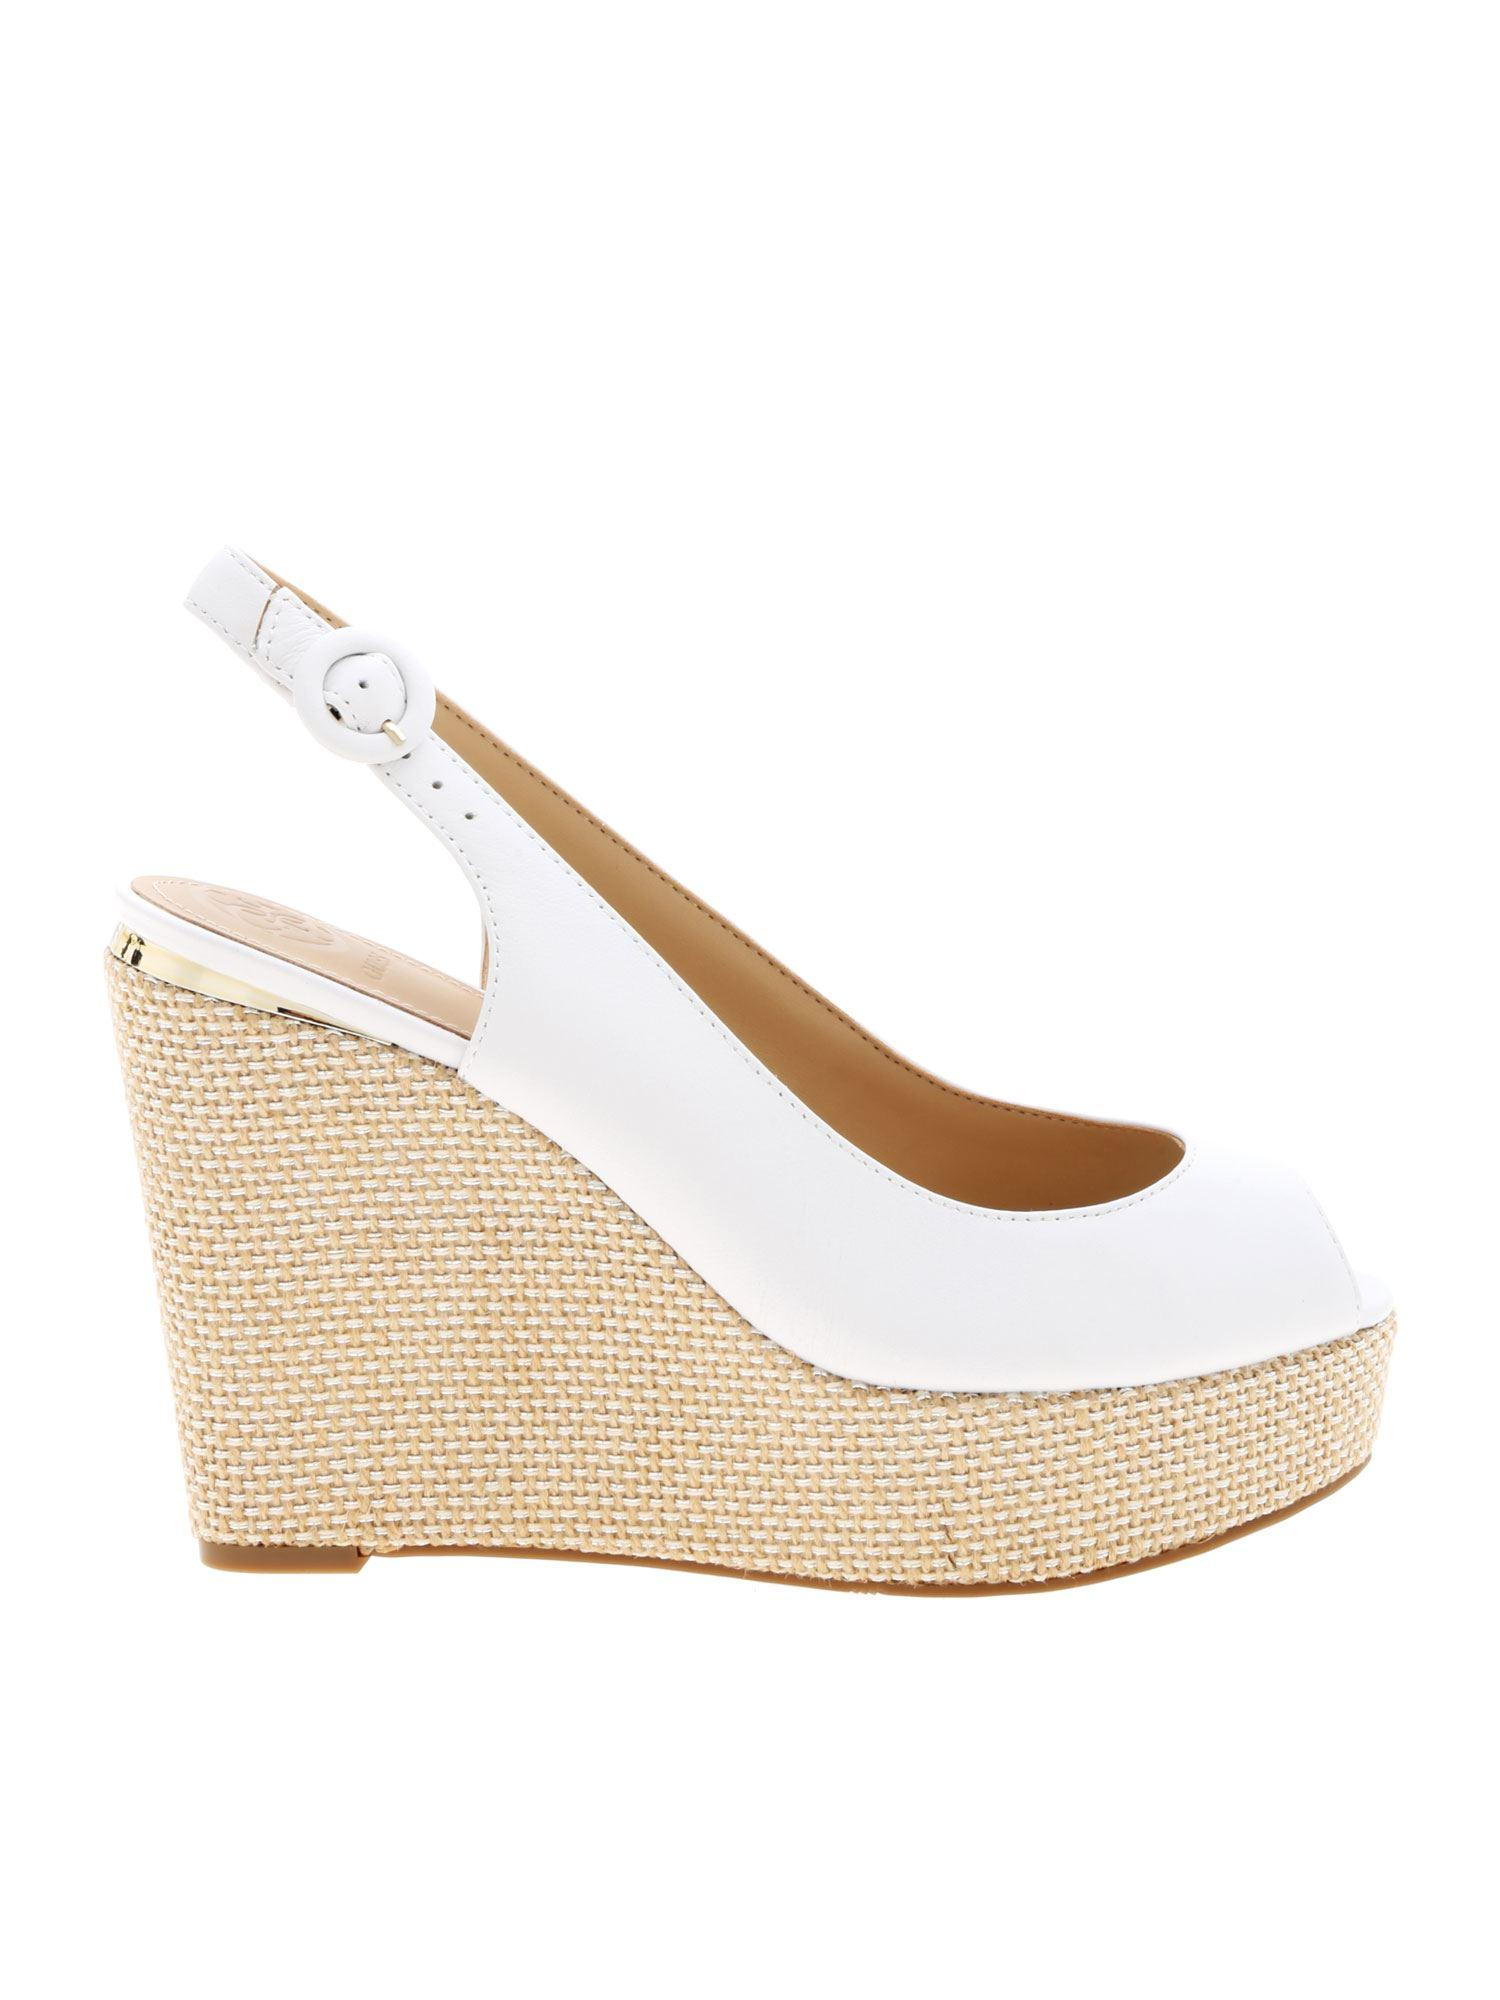 Guess Leather Hardy Wedges in White - Lyst